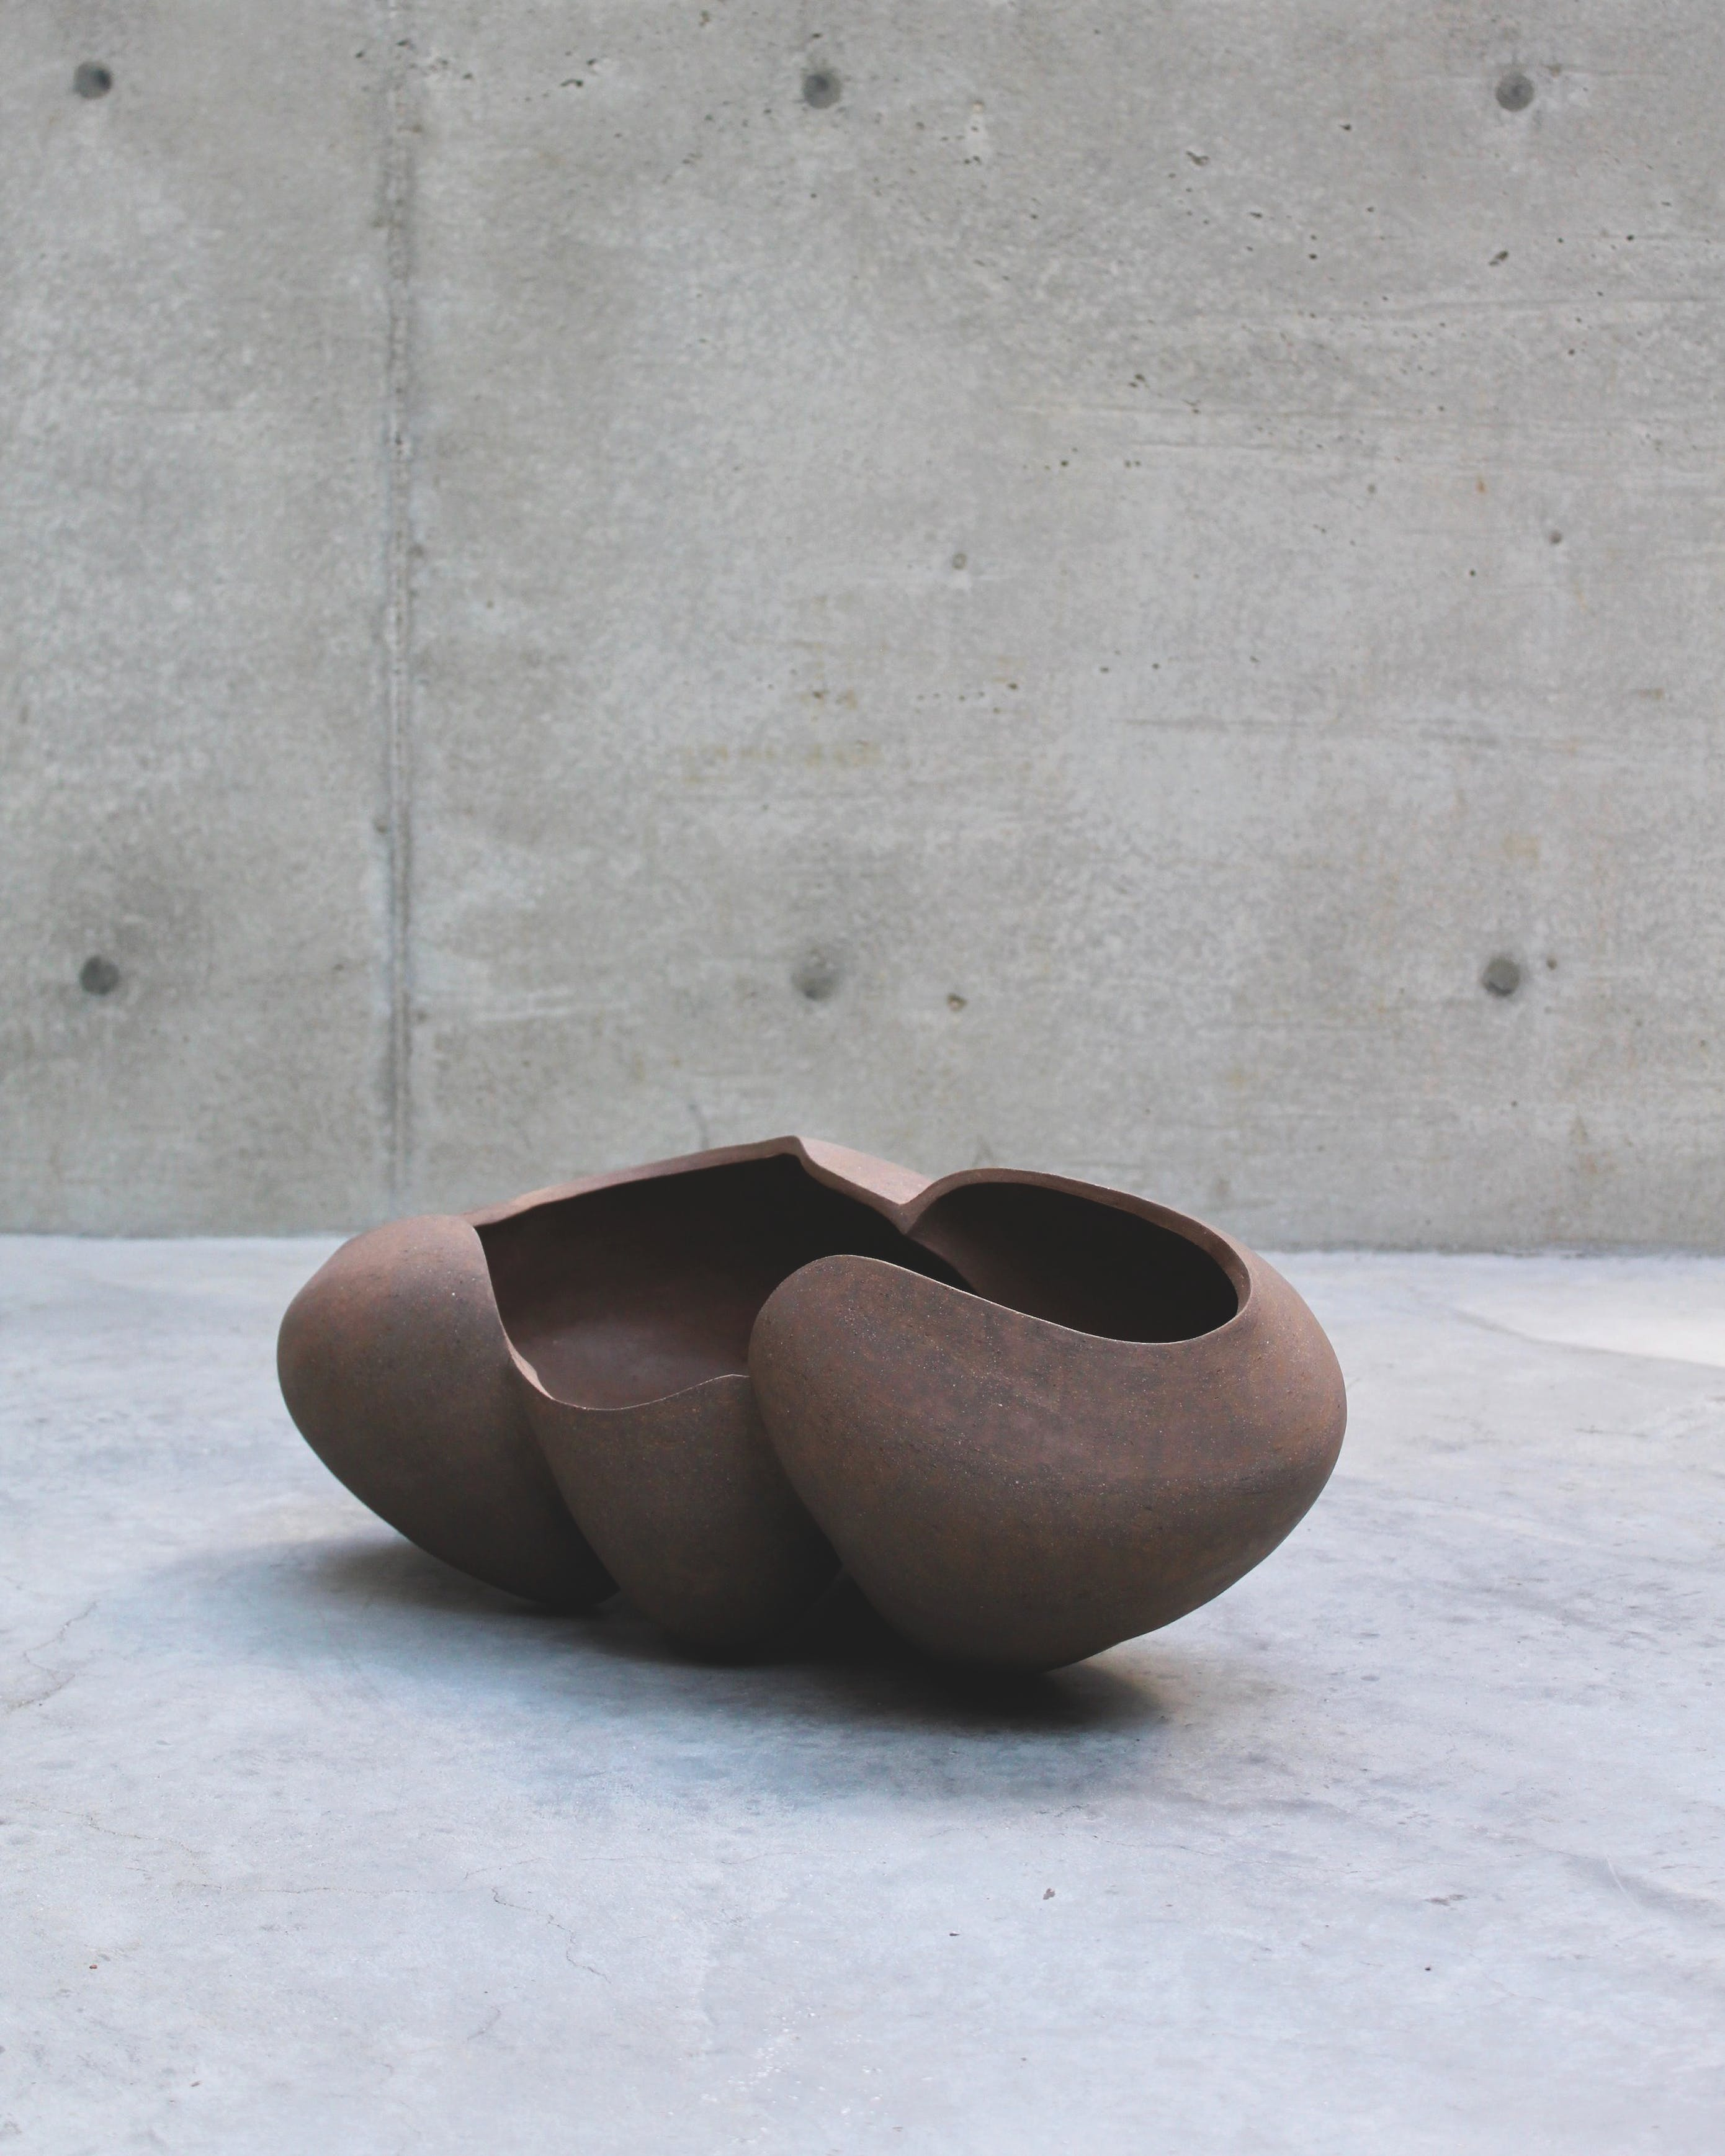 Smooth brown ceramic vessel on concrete surface